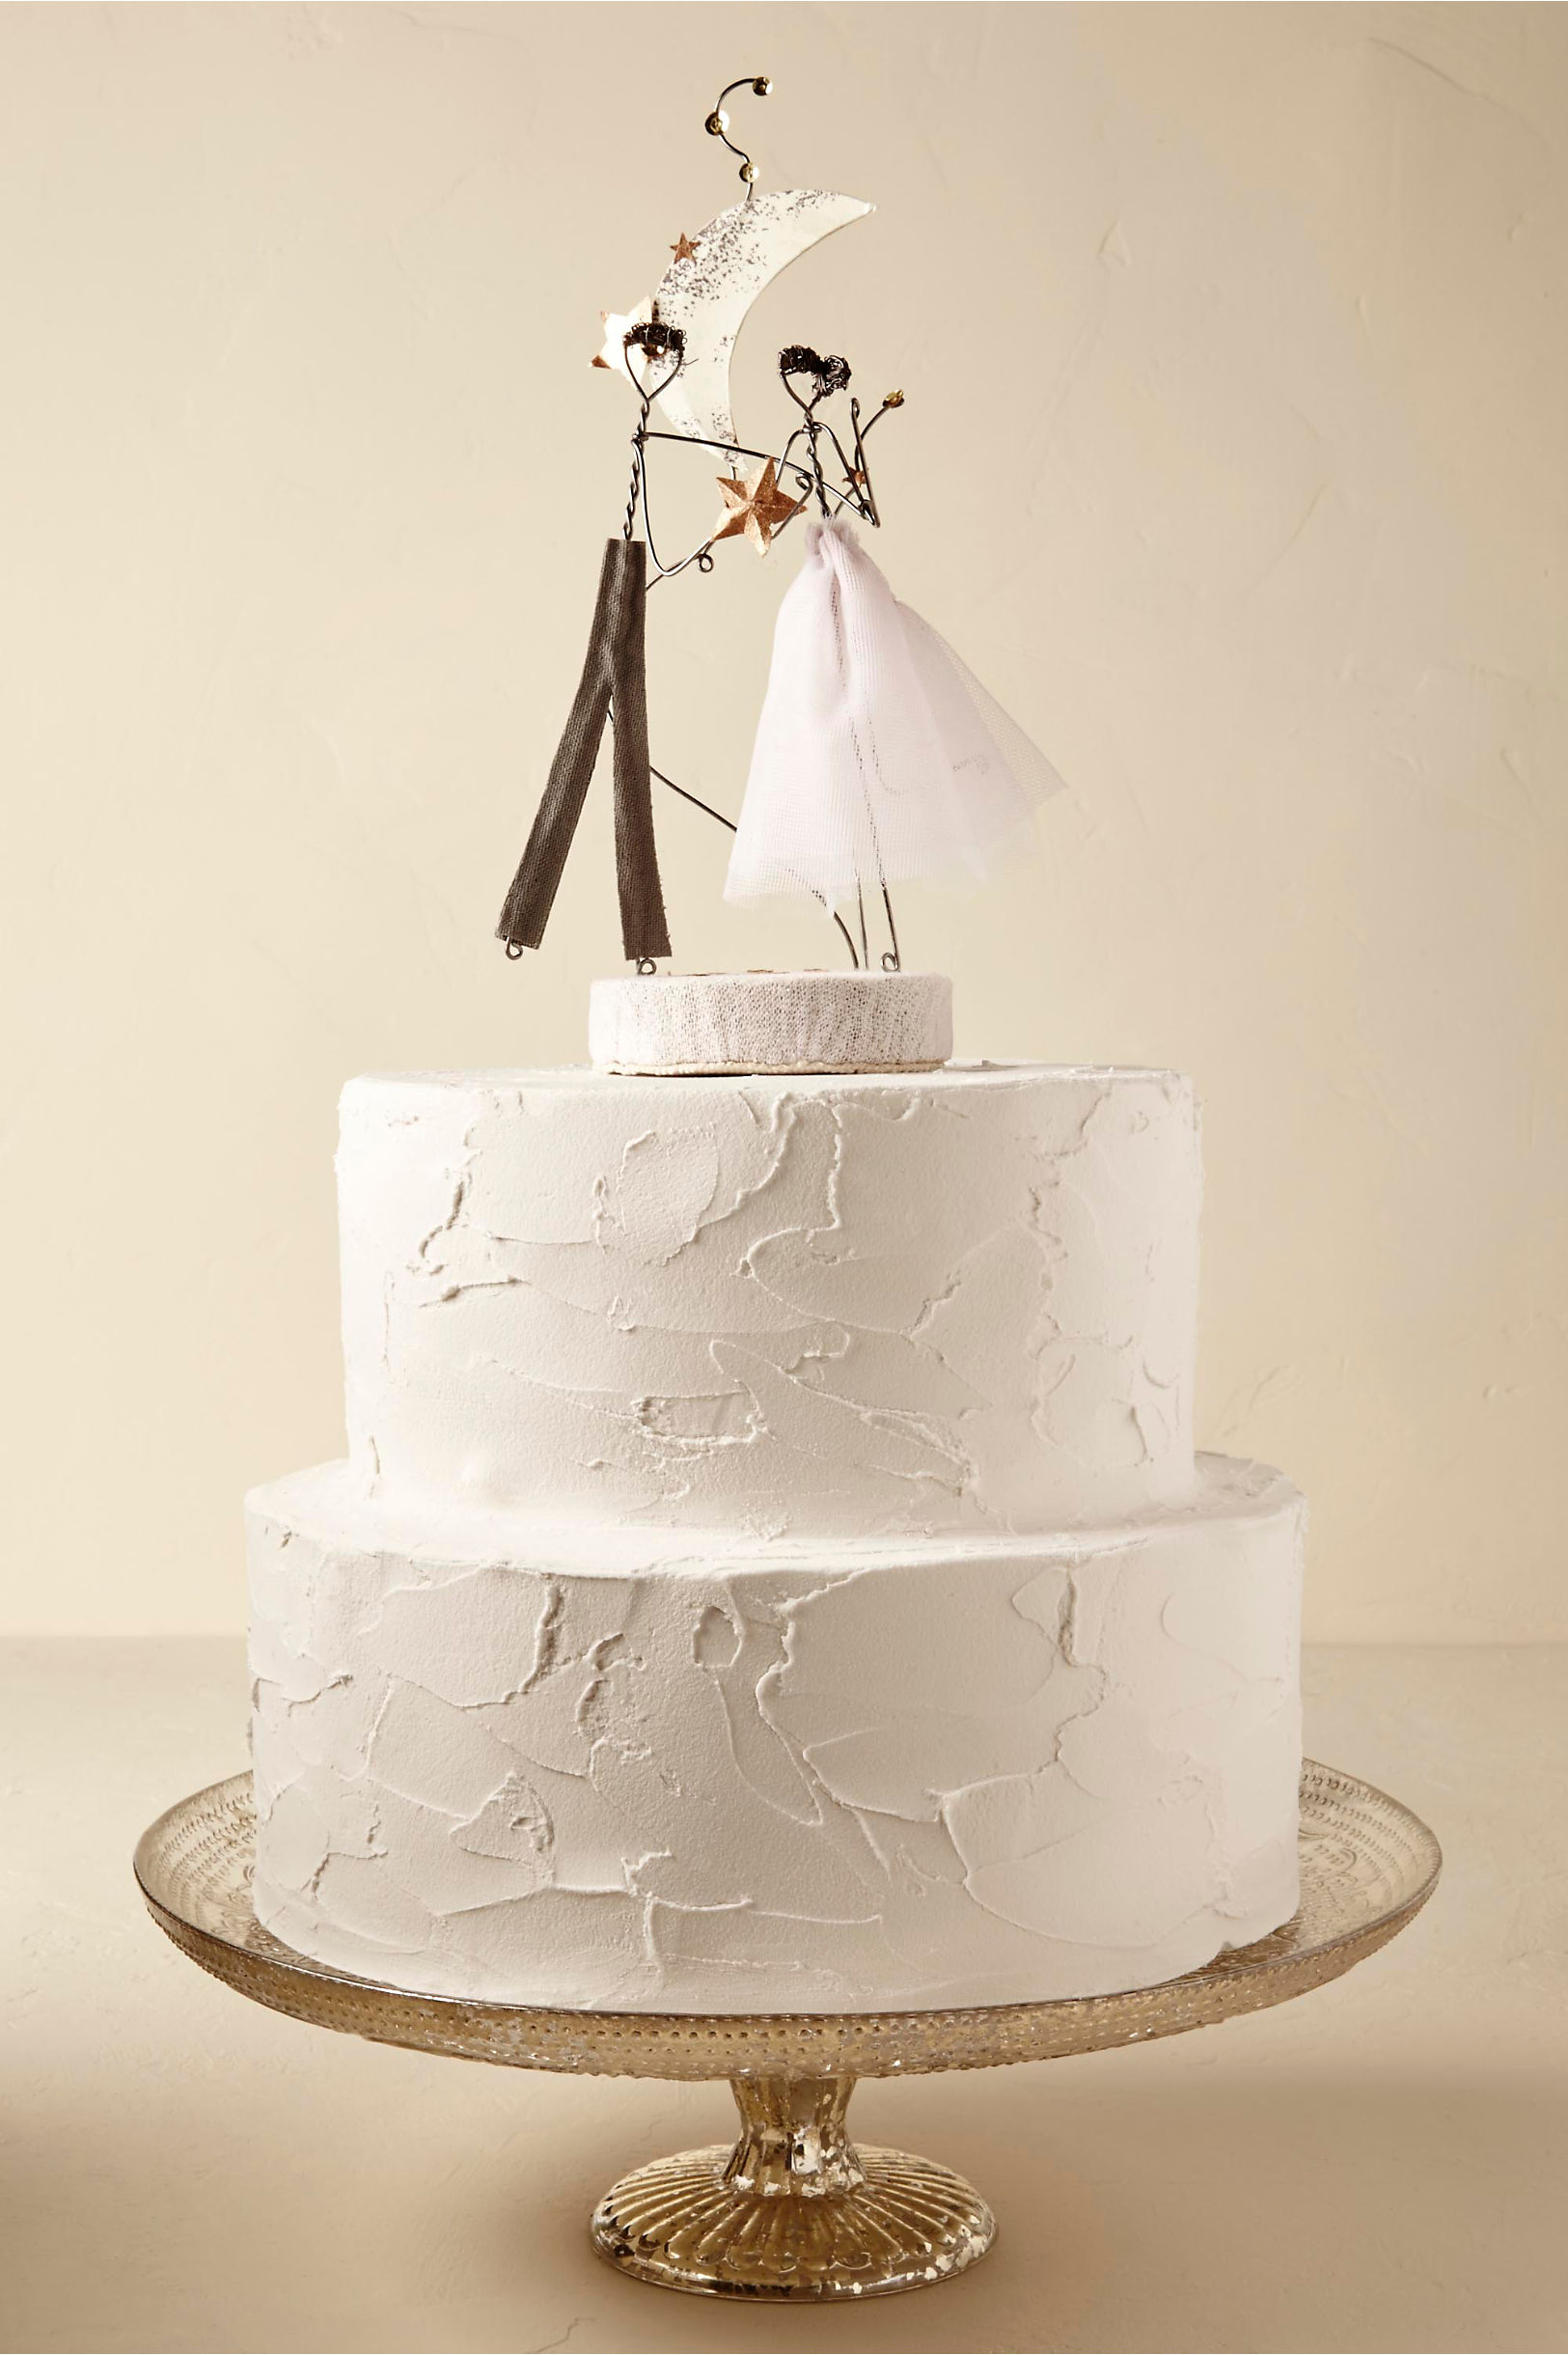 Over the Moon Cake Topper in Sale | BHLDN